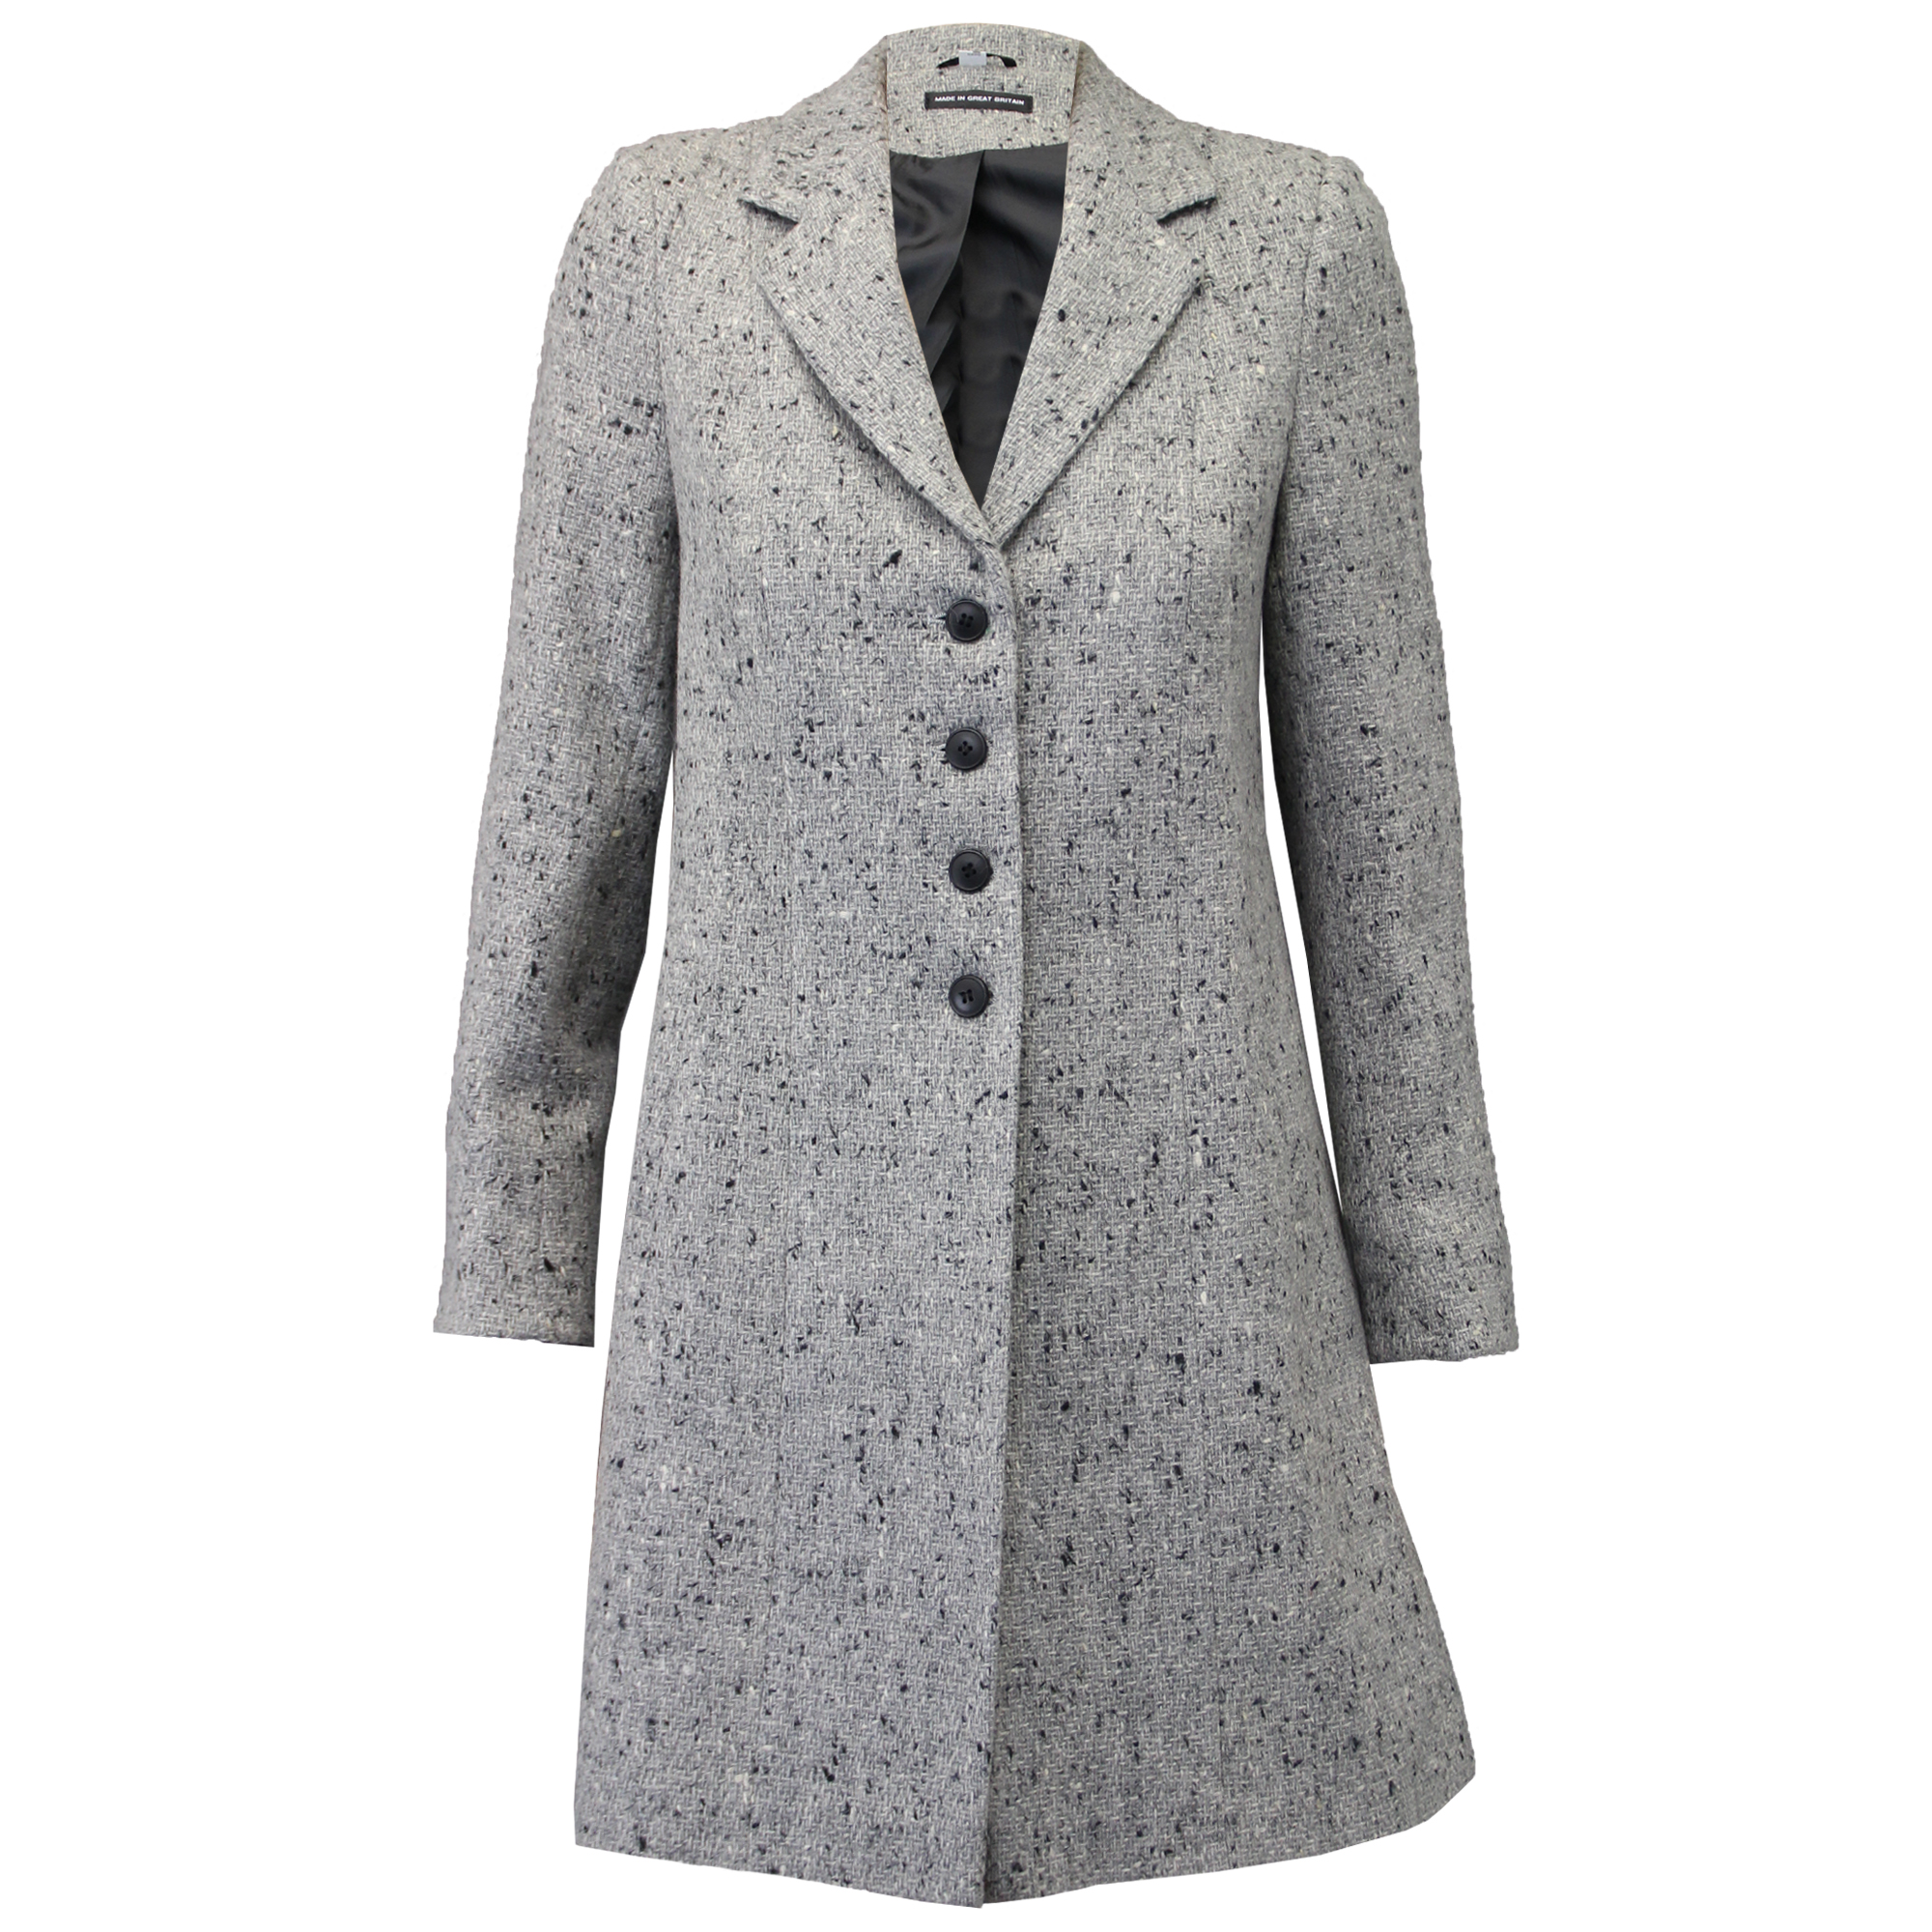 Rocawear womens winter coats